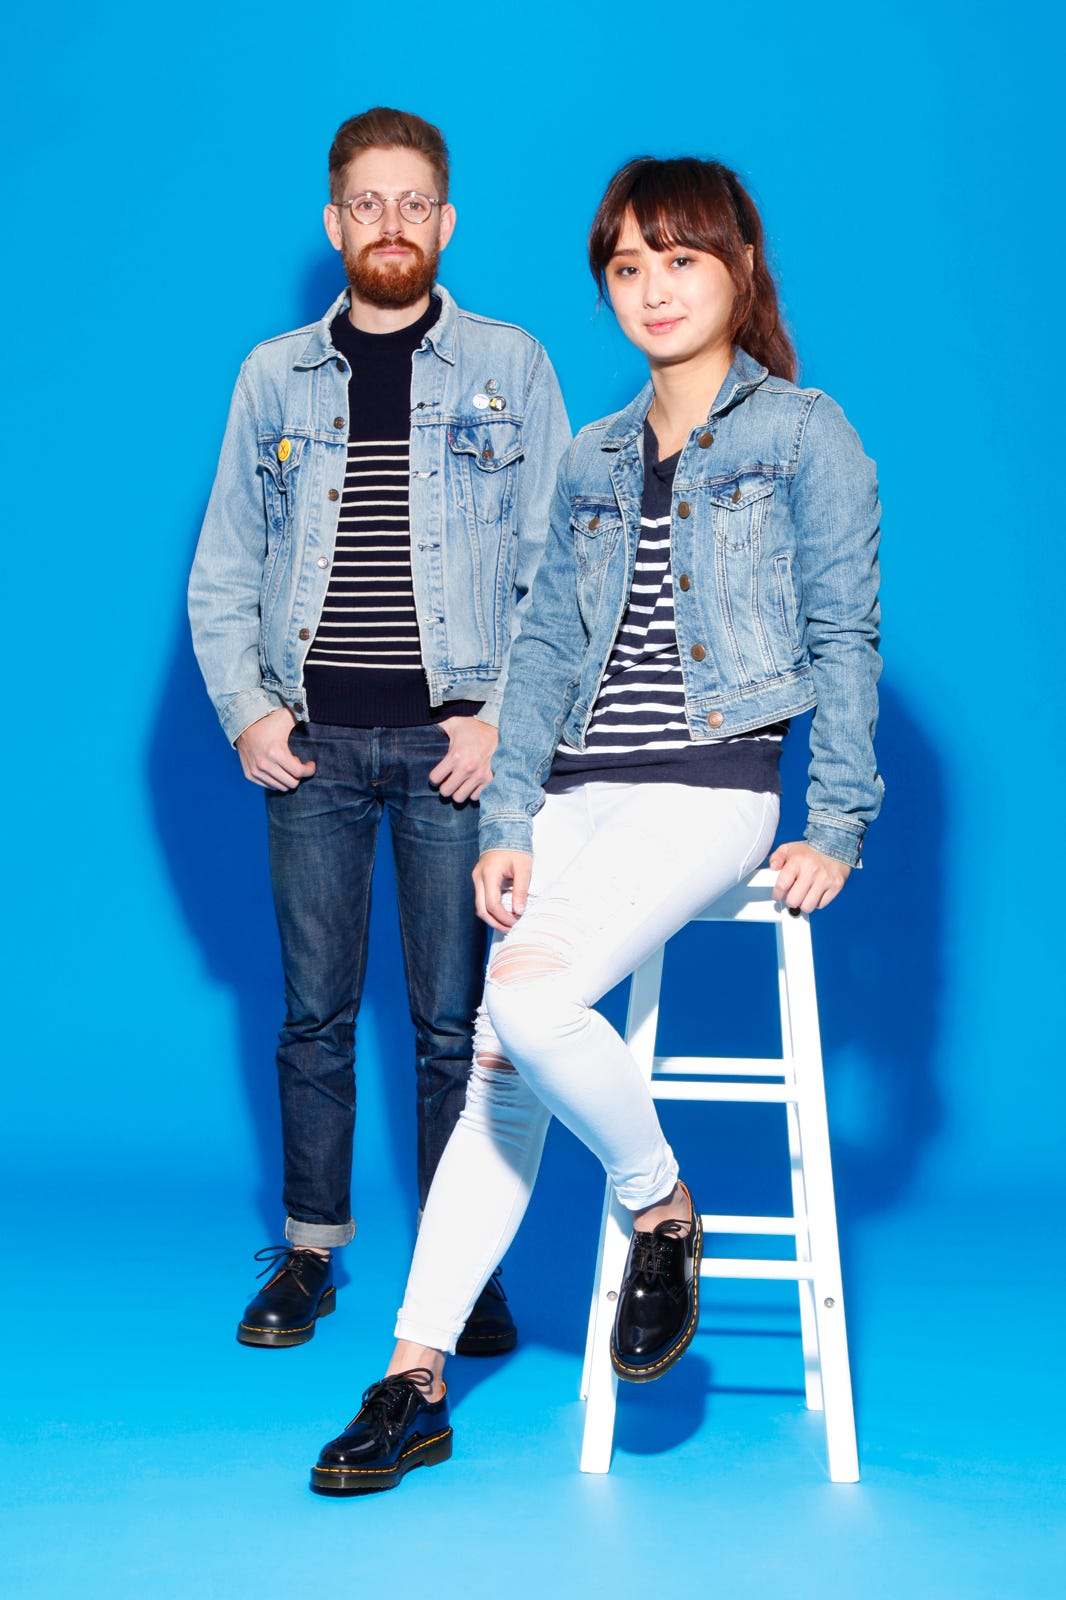 13aae1644bb Matching Outfits For Couples - Experimental Fashion